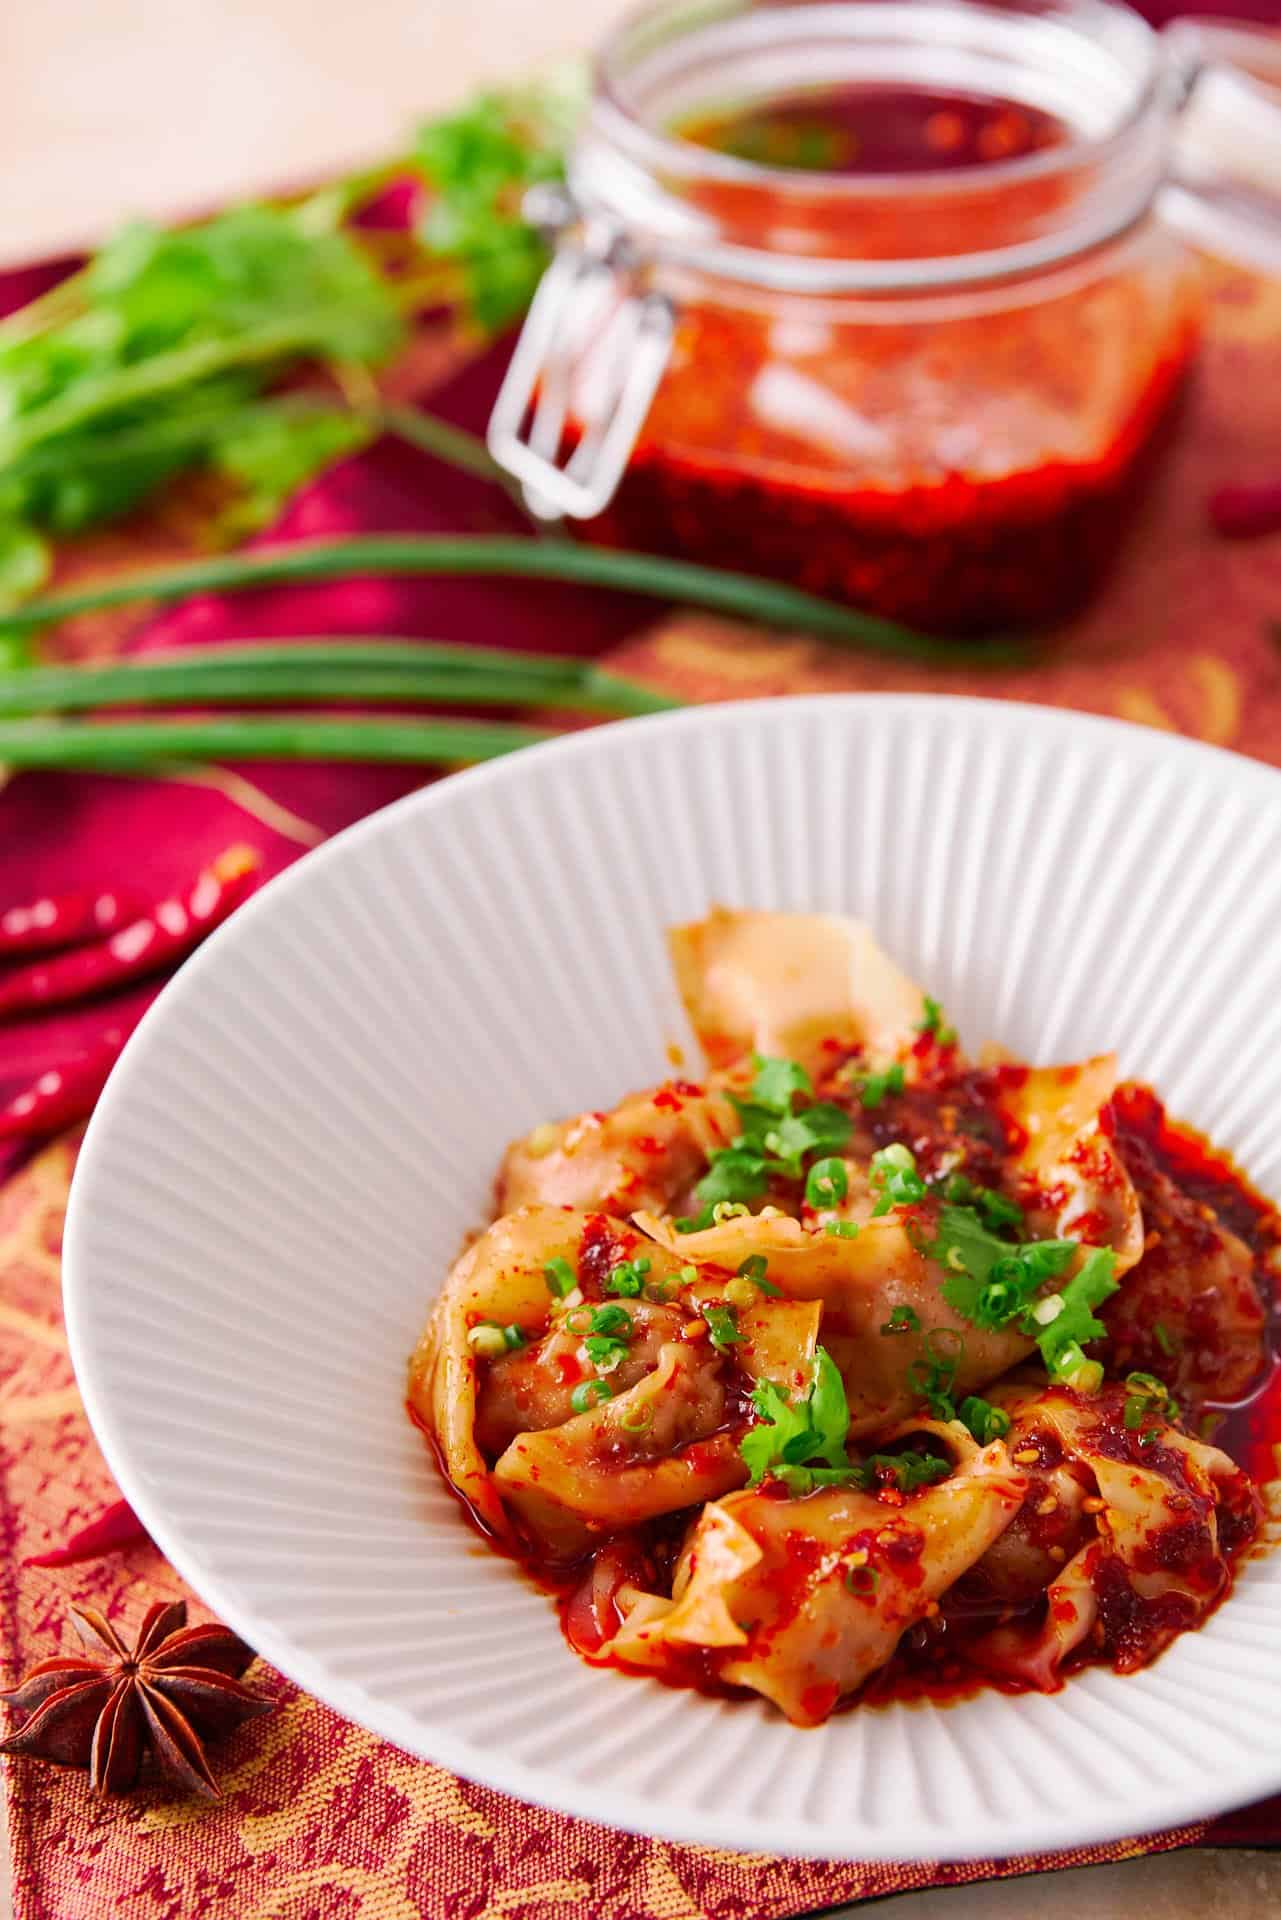 With tender pork dumplings wrapped in a slick noodle and tossed with a fiery Sichuan-style sauce, these Spicy Wontons in Chili Oil are easy to make and delicious!.